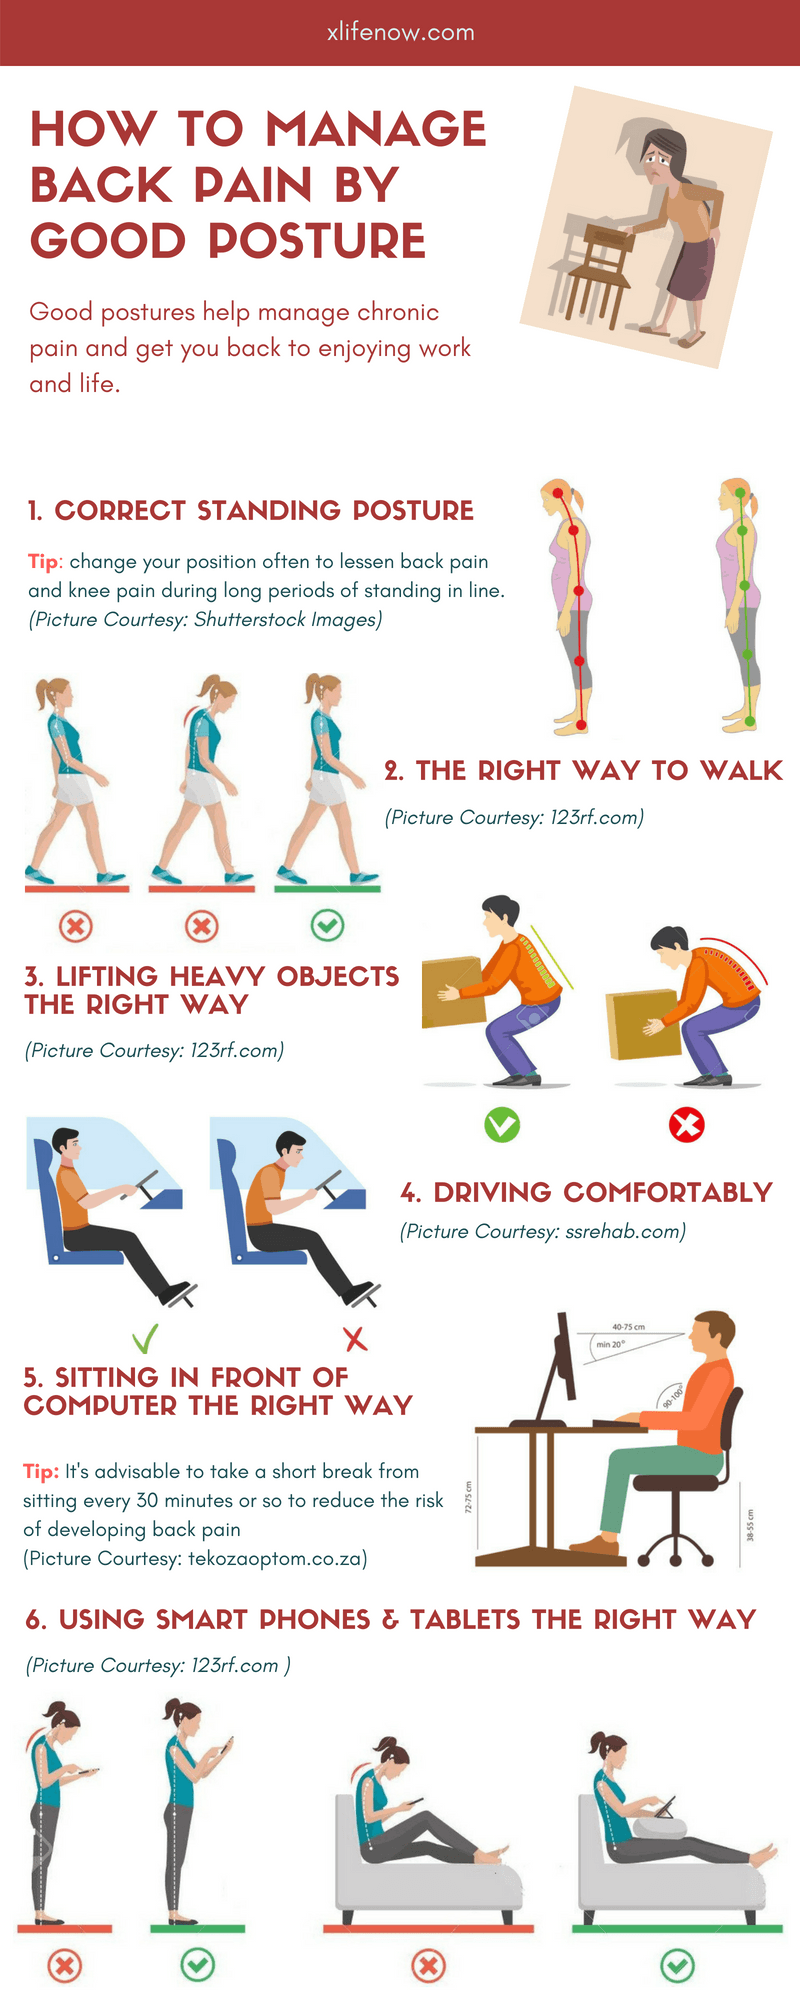 How to manage Back Pain by Good Posture Infographic